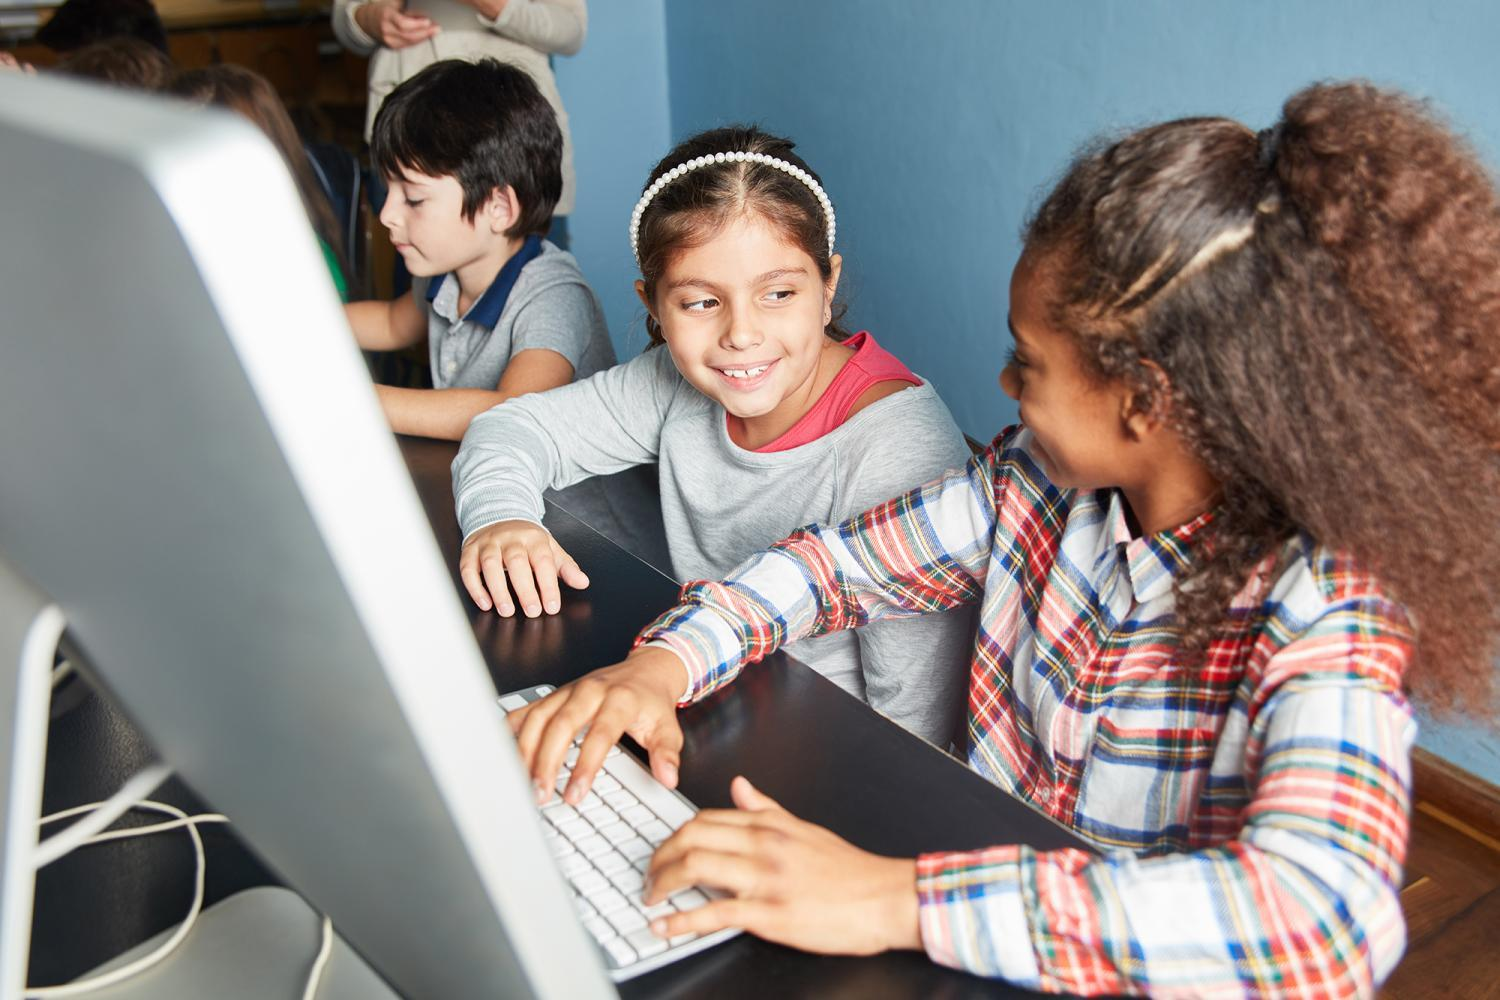 kids working on a computer together